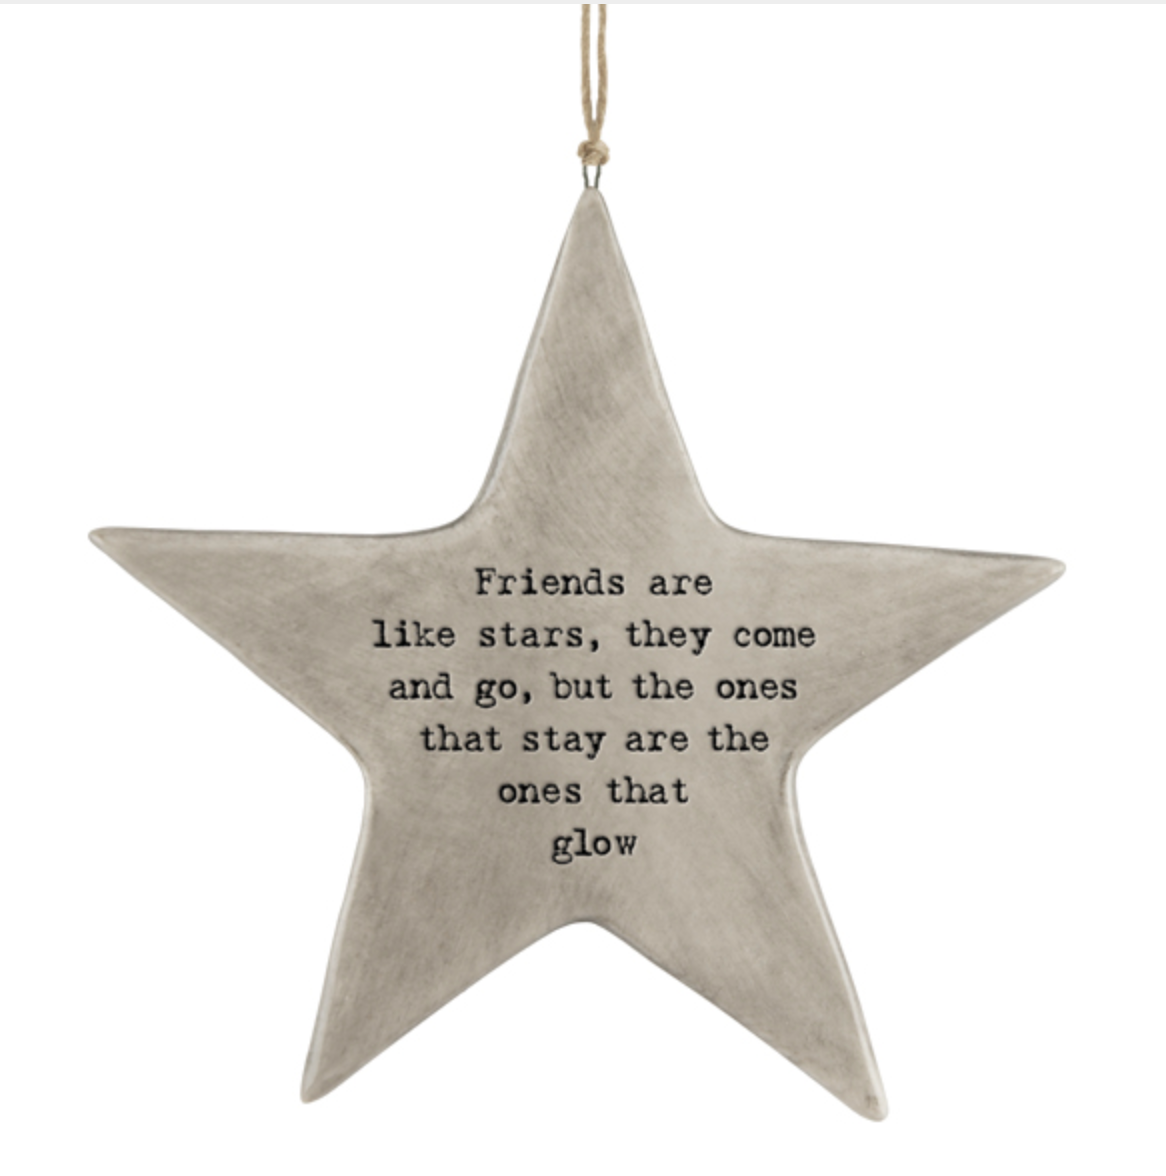 East of India Porcelain Rustic Hanging Star - Friends are Like Stars.....